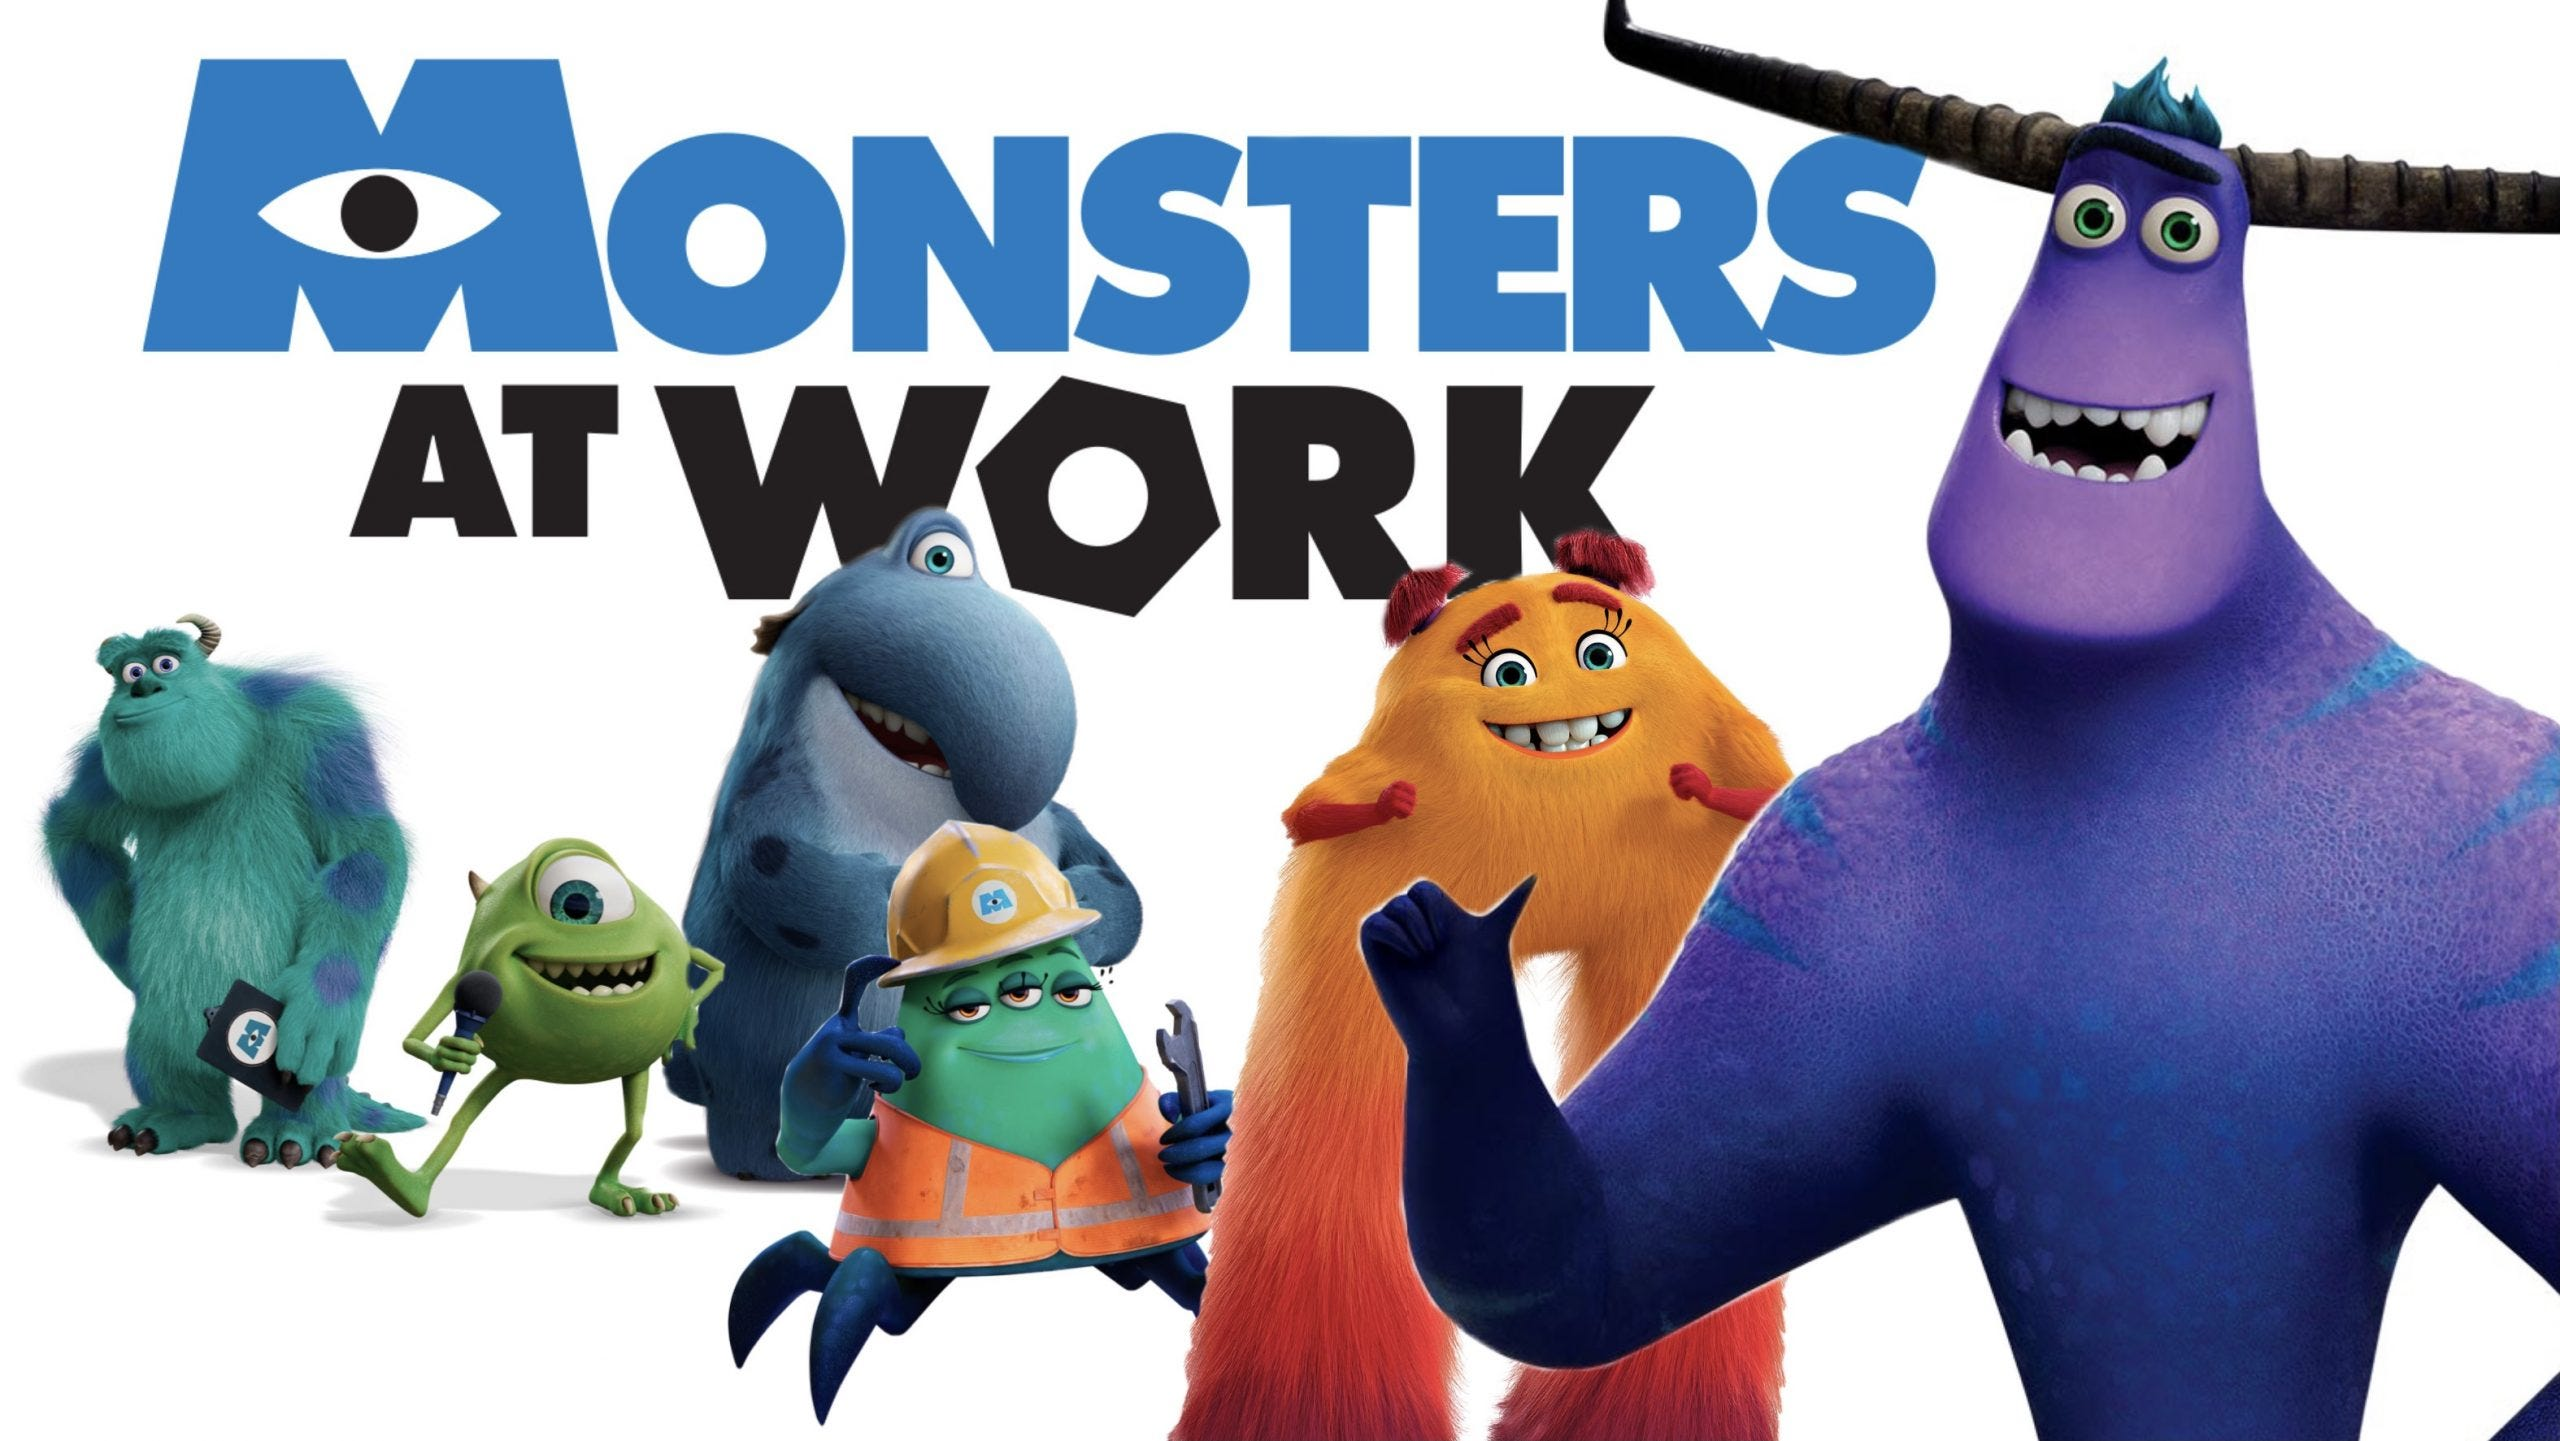 How to watch Monsters at Work on Disney Plus